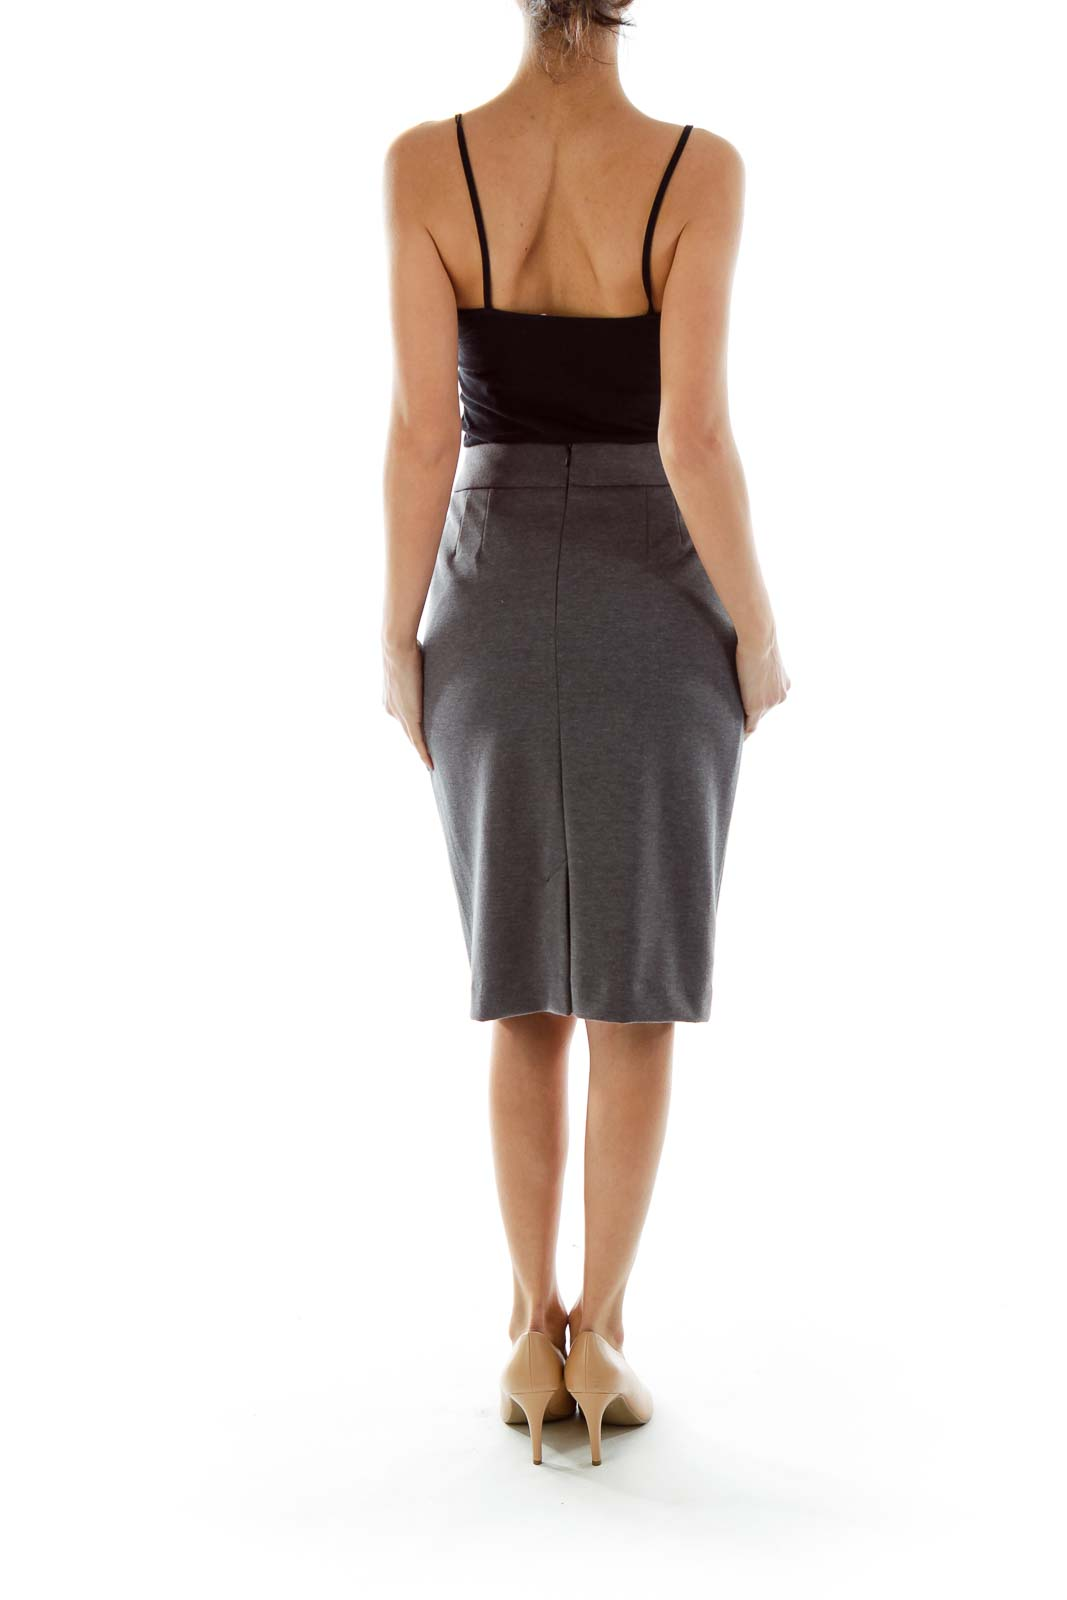 3450e19c2 Shop Gray Mottled Pencil Skirt clothing and handbags at SilkRoll ...